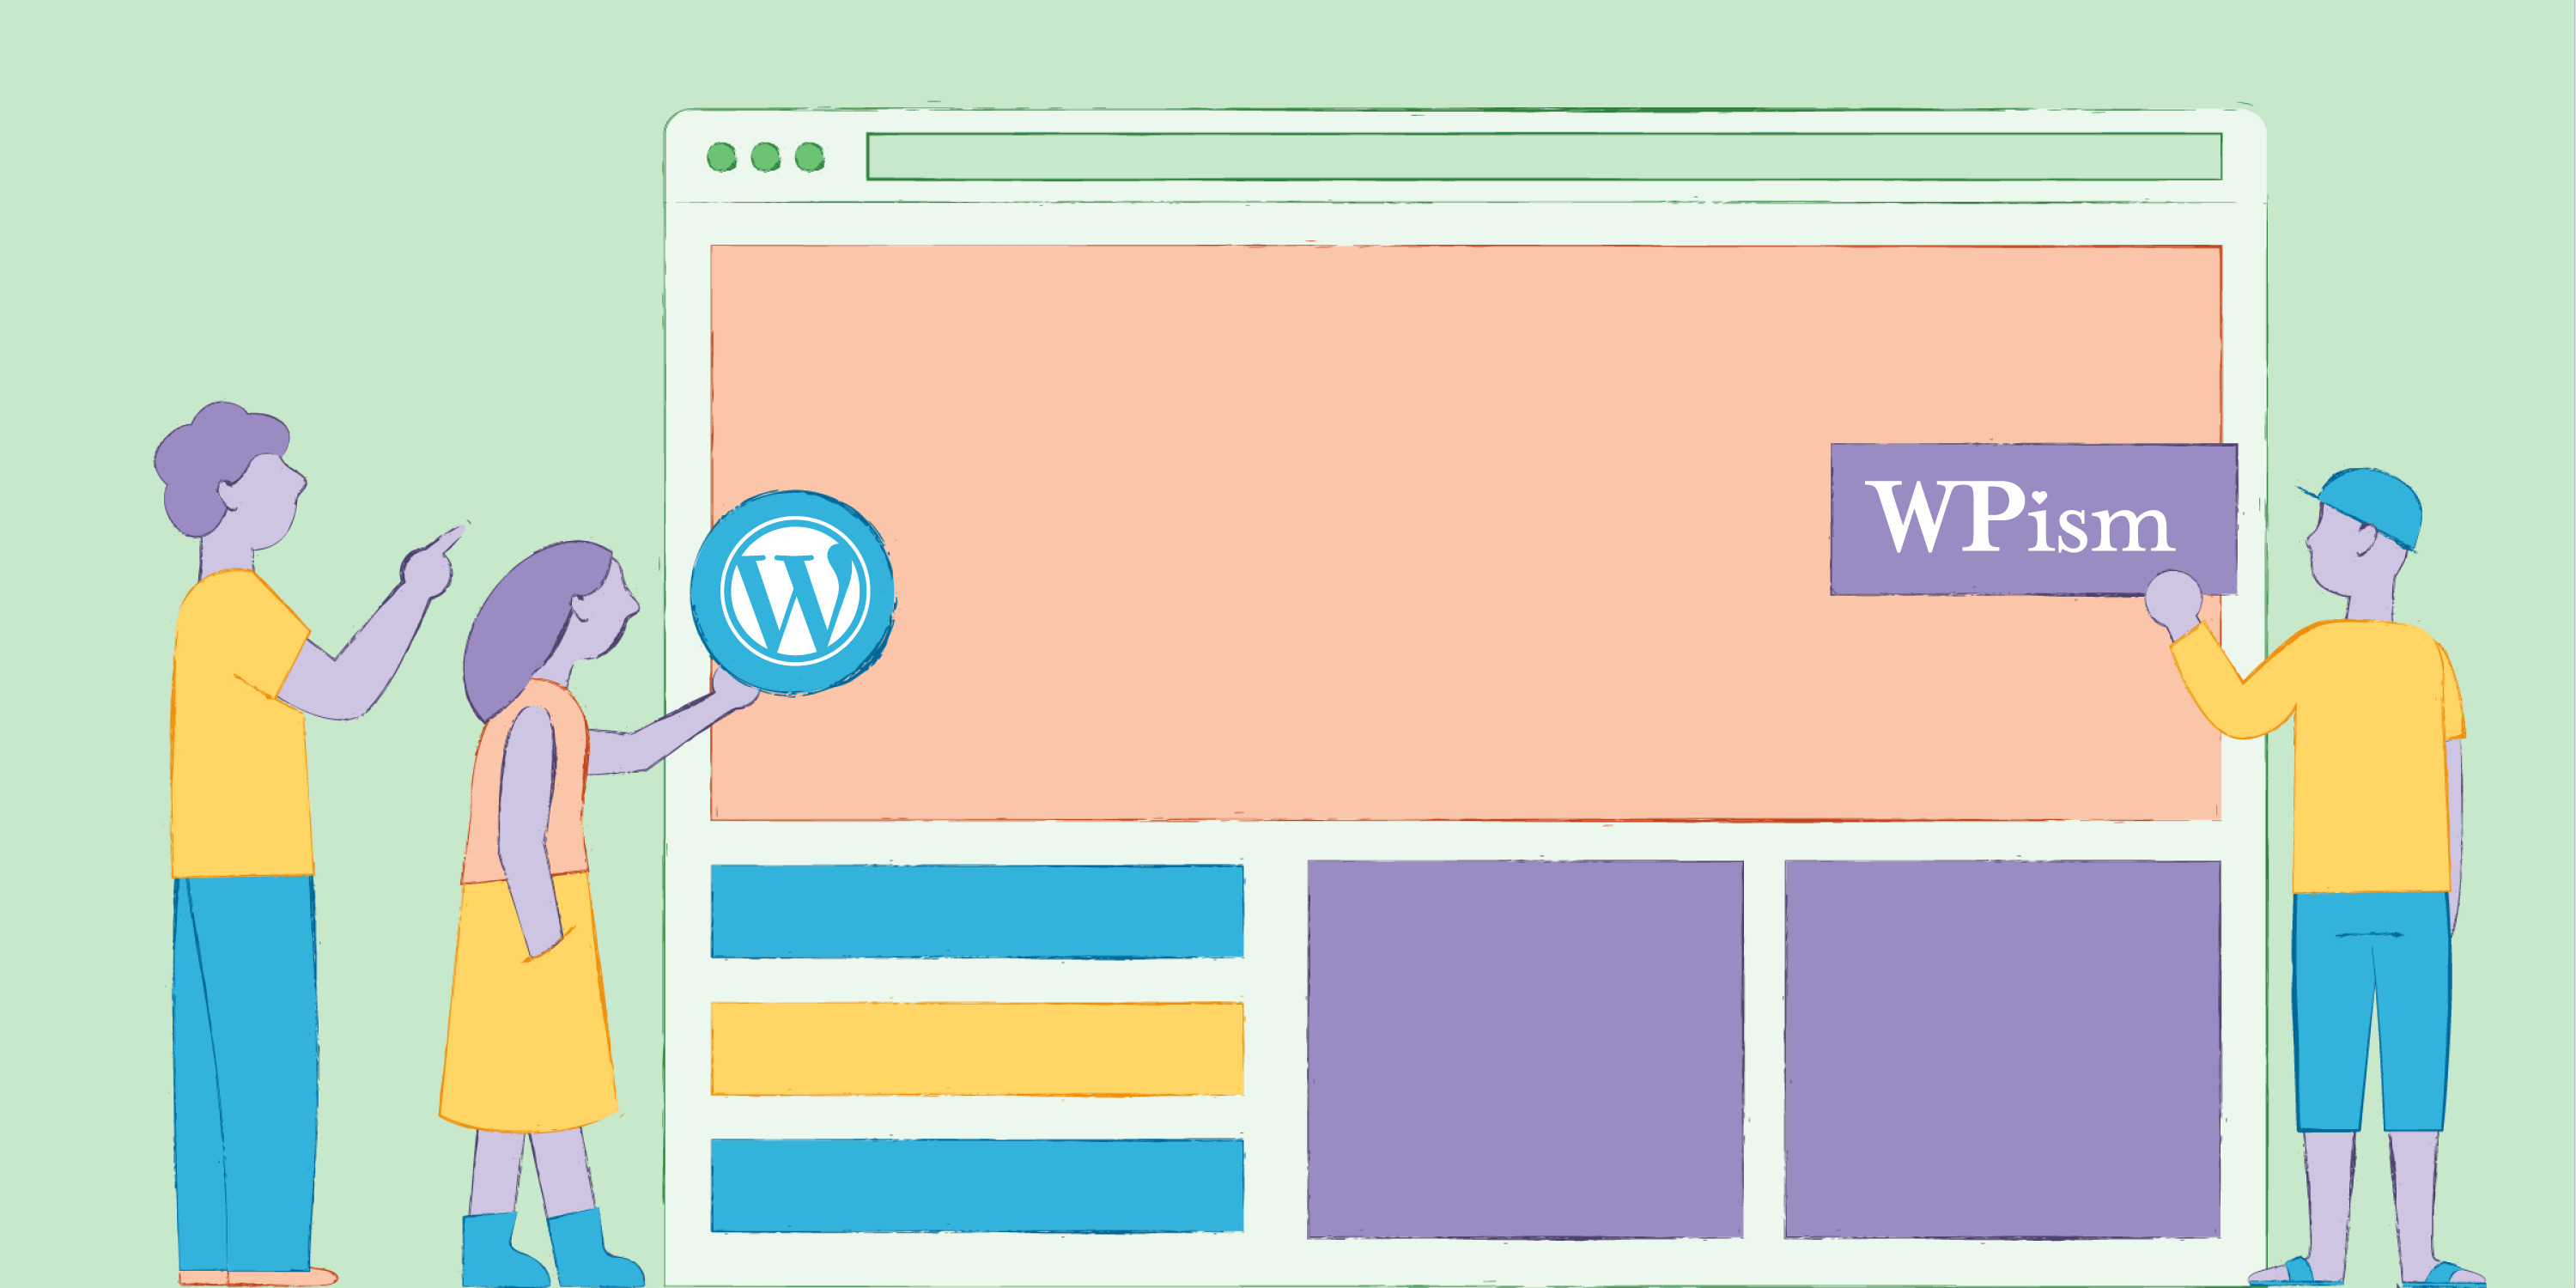 WordPress 4.9 WPism